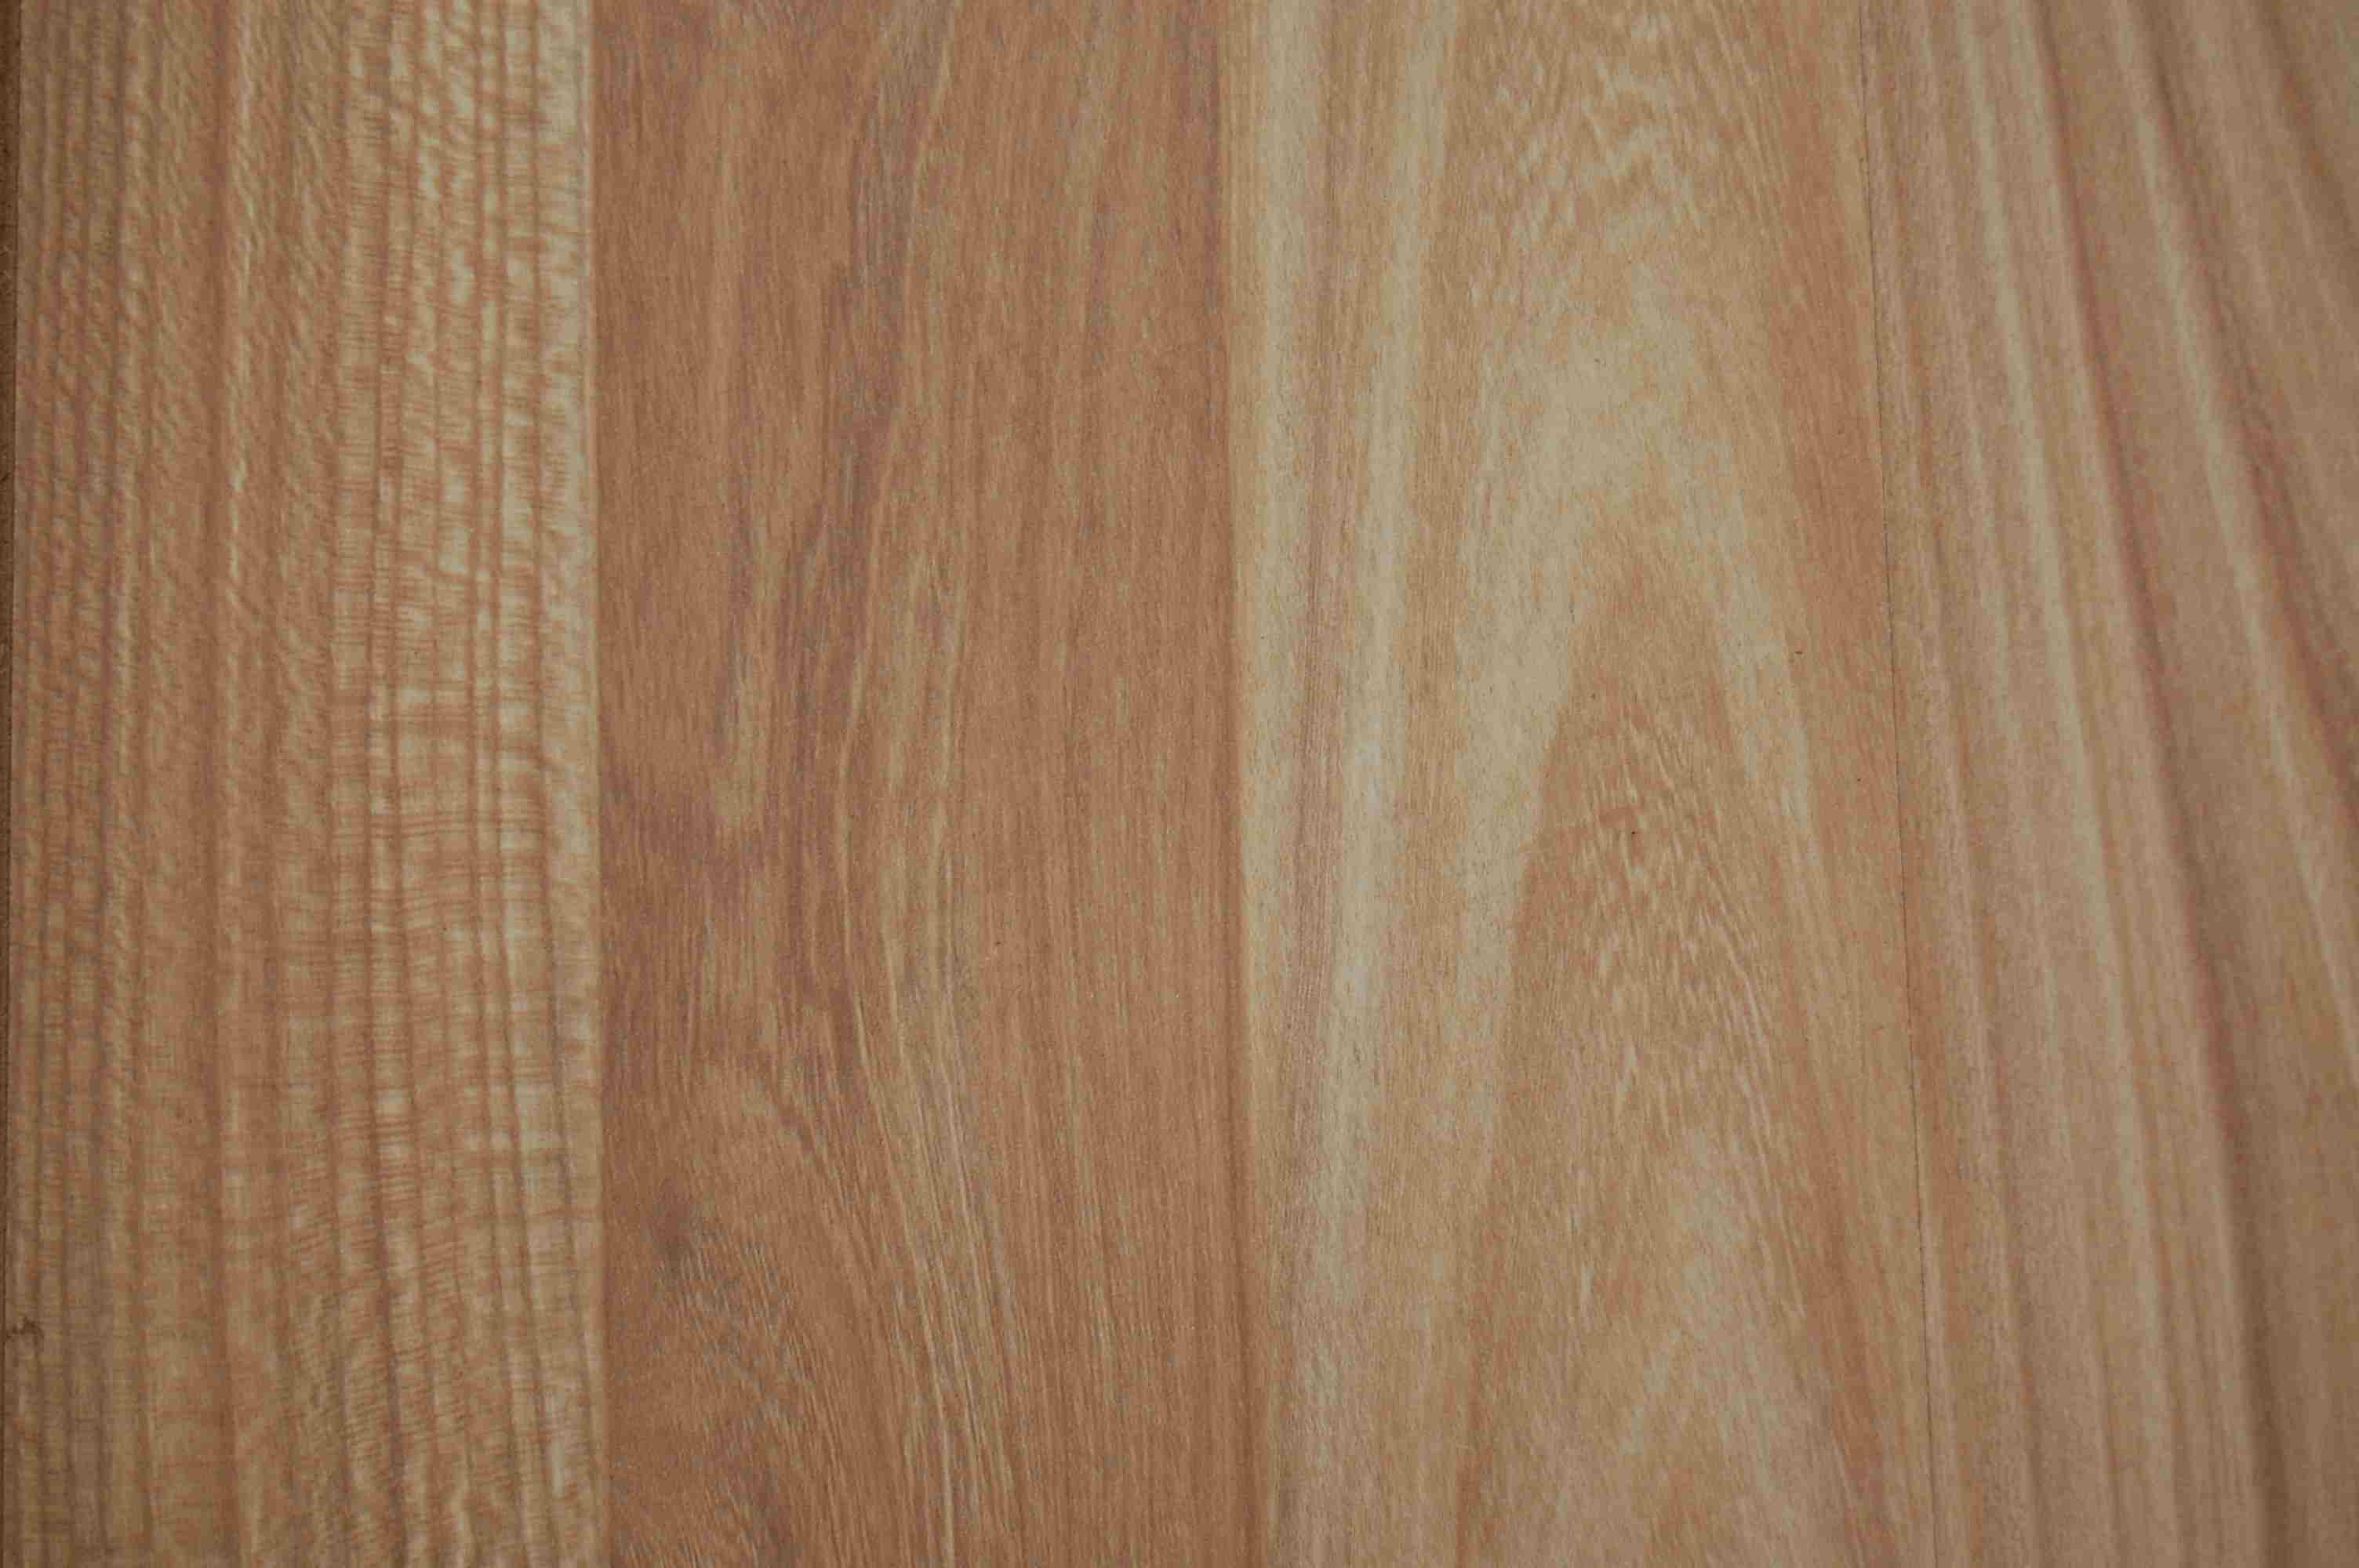 Laminate flooring wood flooring laminate flooring for Laminate tiles